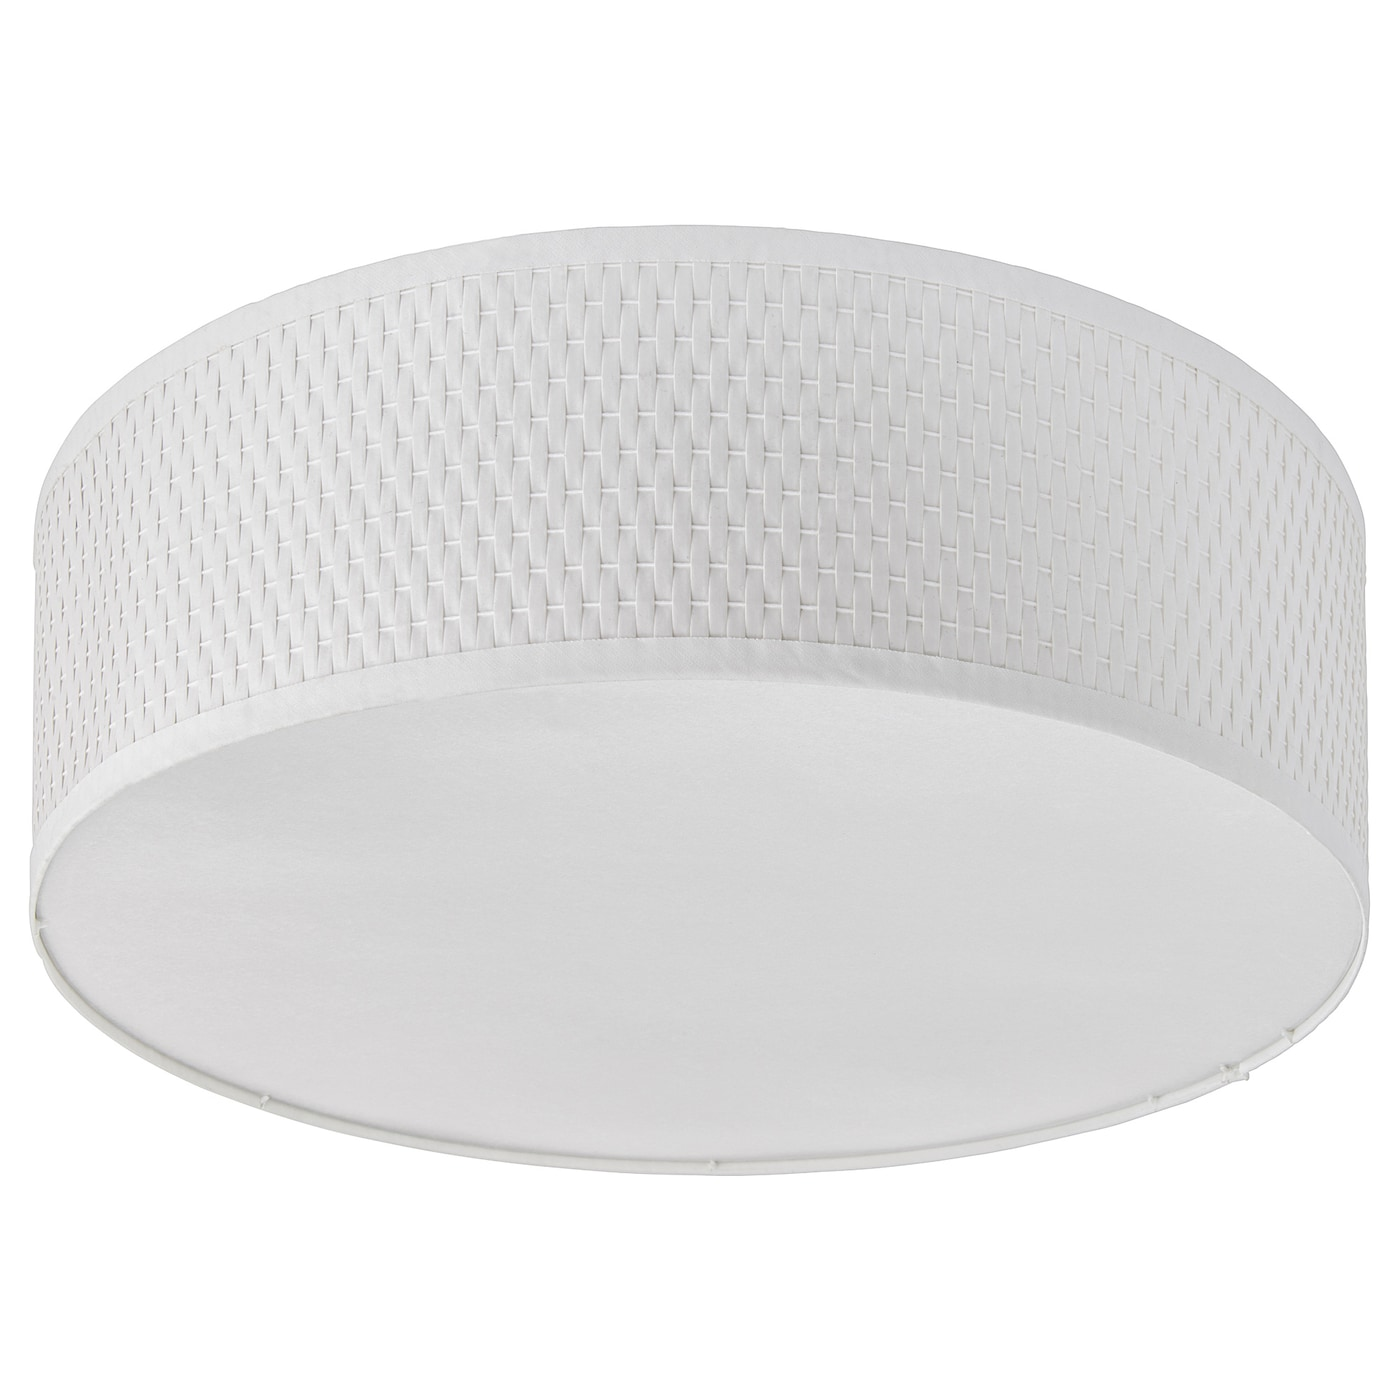 Led ceiling lights shop at ikea ireland ikea alng ceiling lamp diffused light that provides good general light in the room aloadofball Images